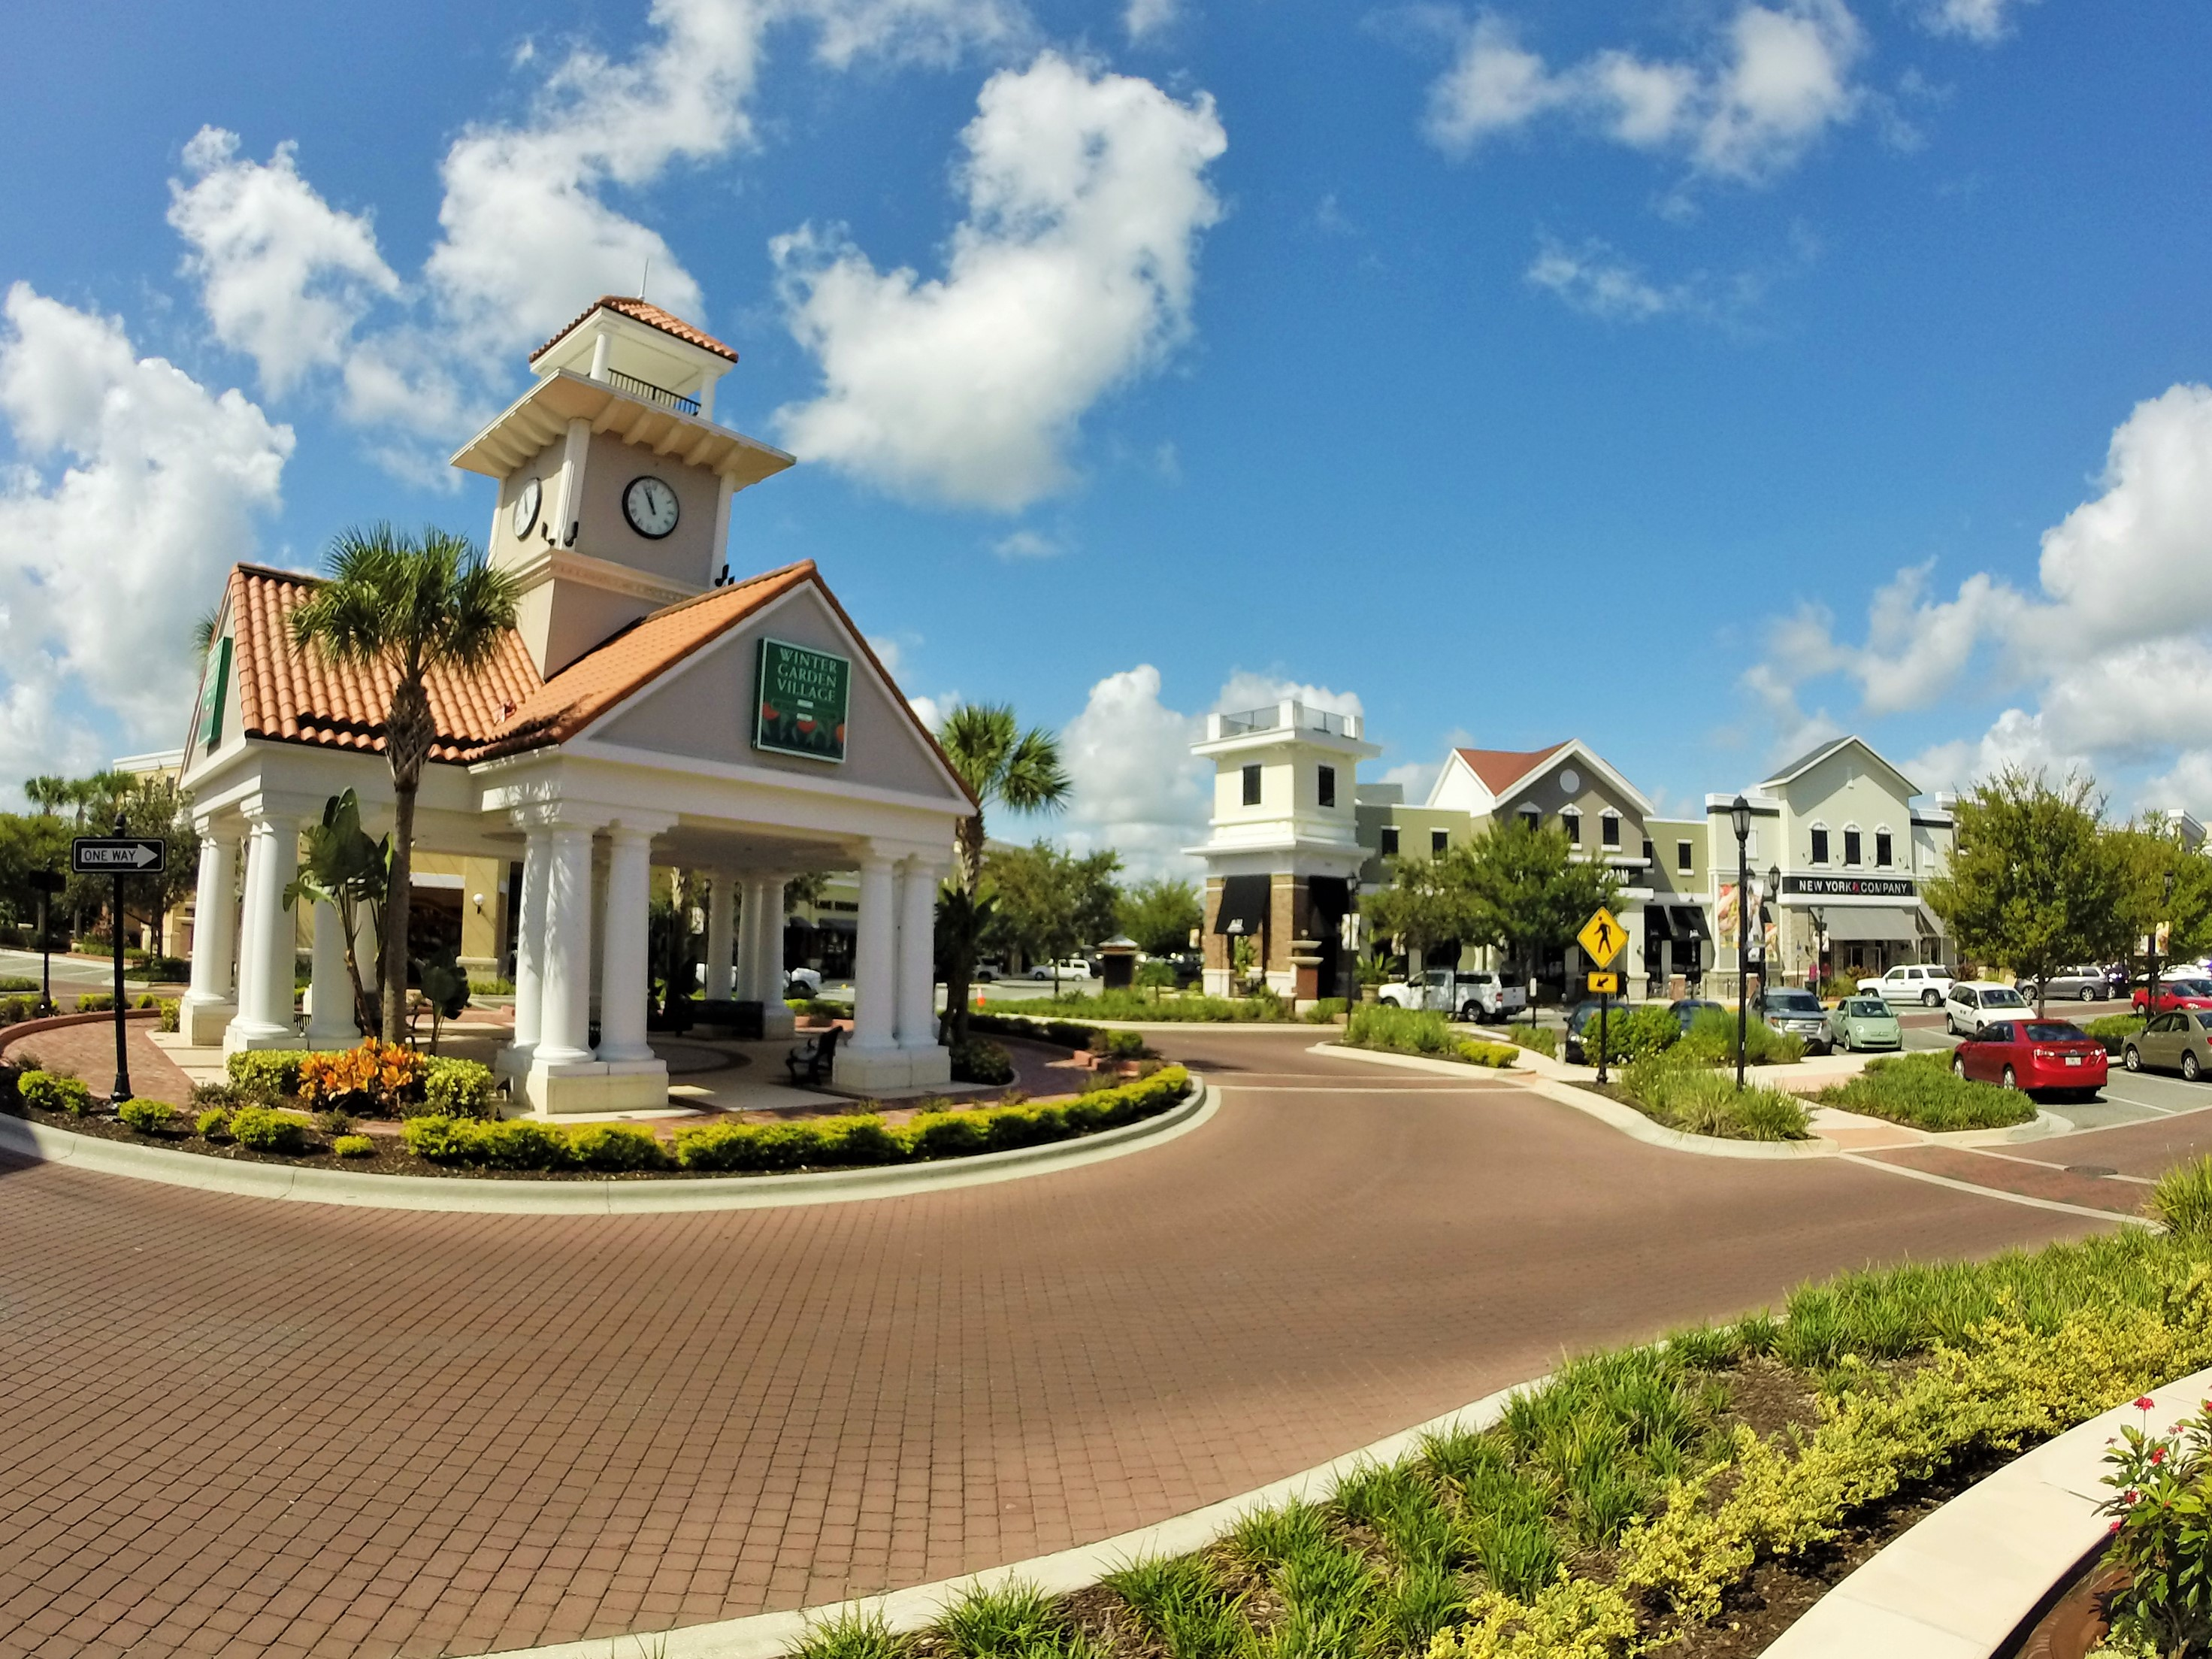 winter garden homes for sale winter garden florida real estate - Winter Garden Fl Homes